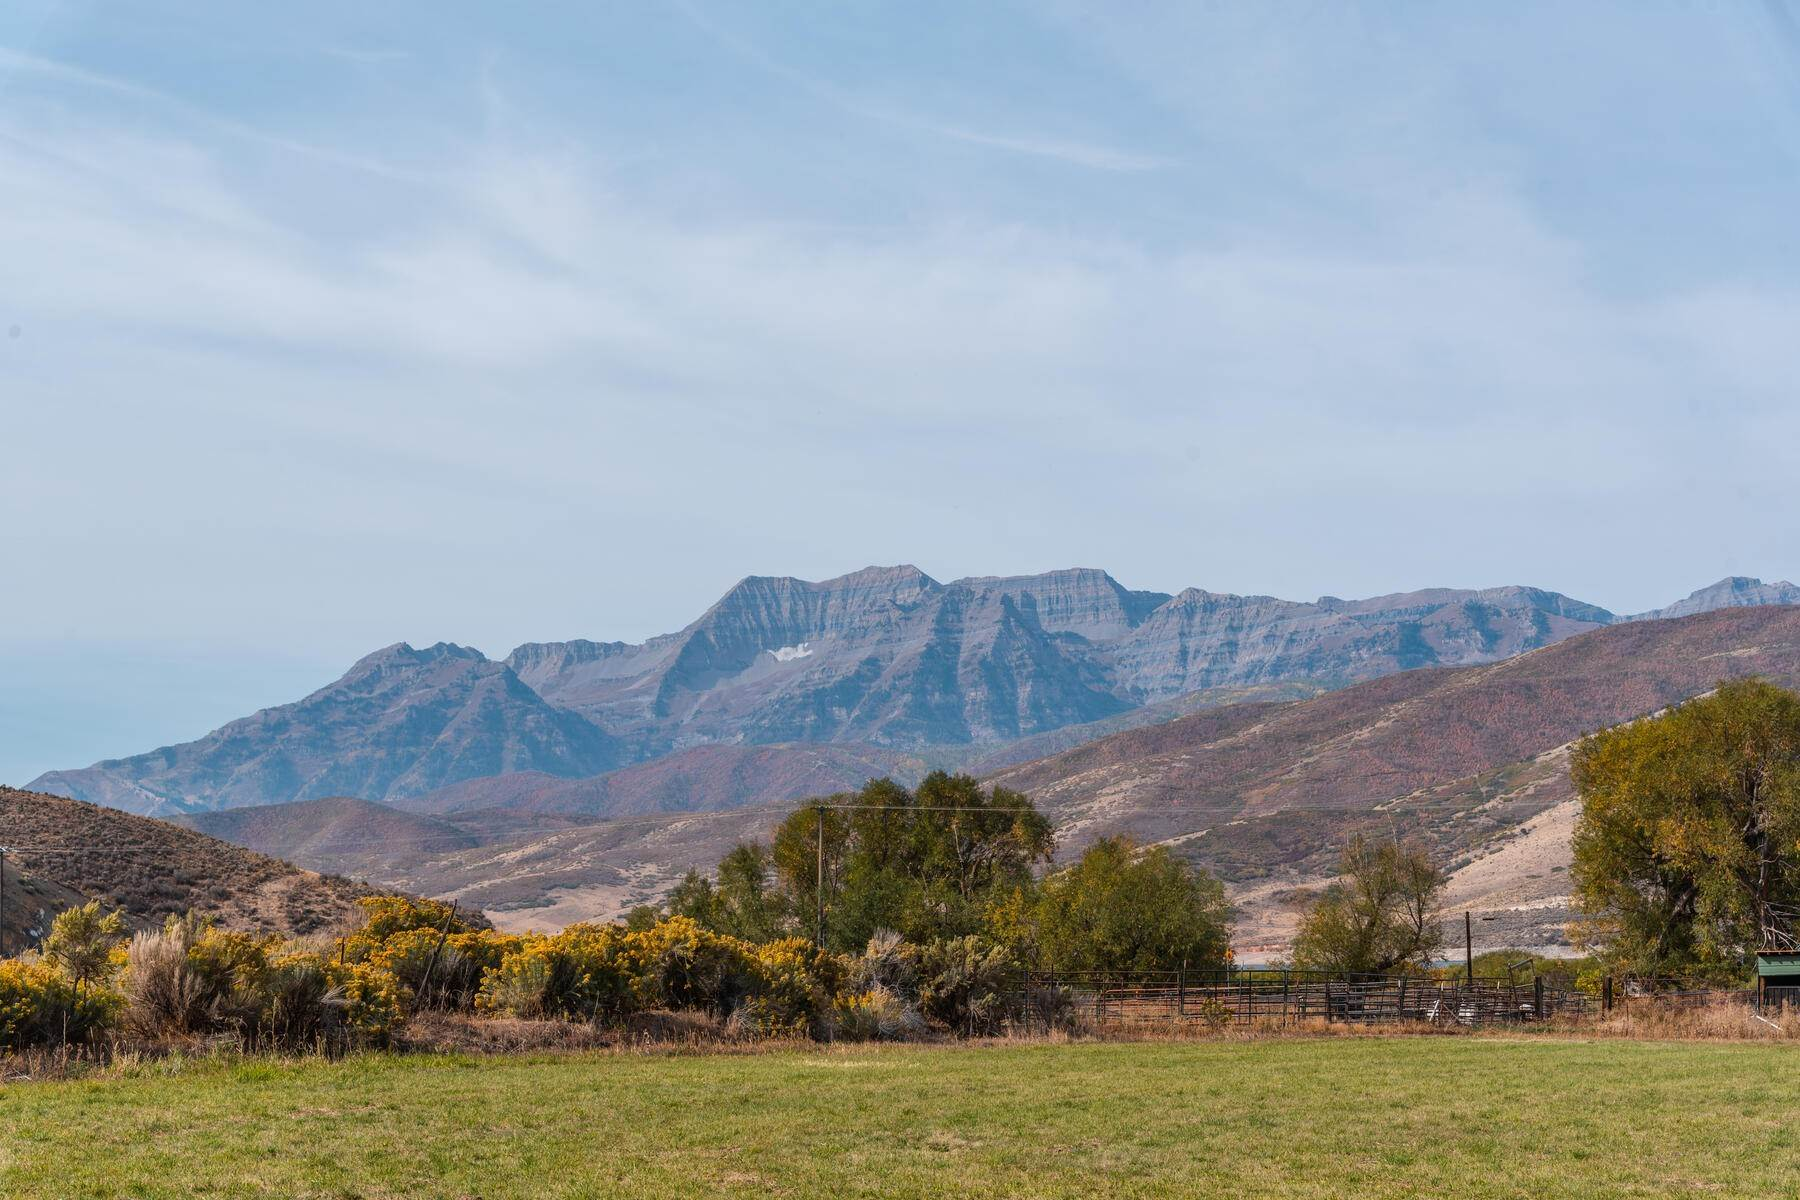 Land for Sale at Gorgeous Timp Mountain Views On Flat Heber Valley Lot Just Steps to Deer Creek R 4021 South 3600 West Charleston, Utah 84032 United States